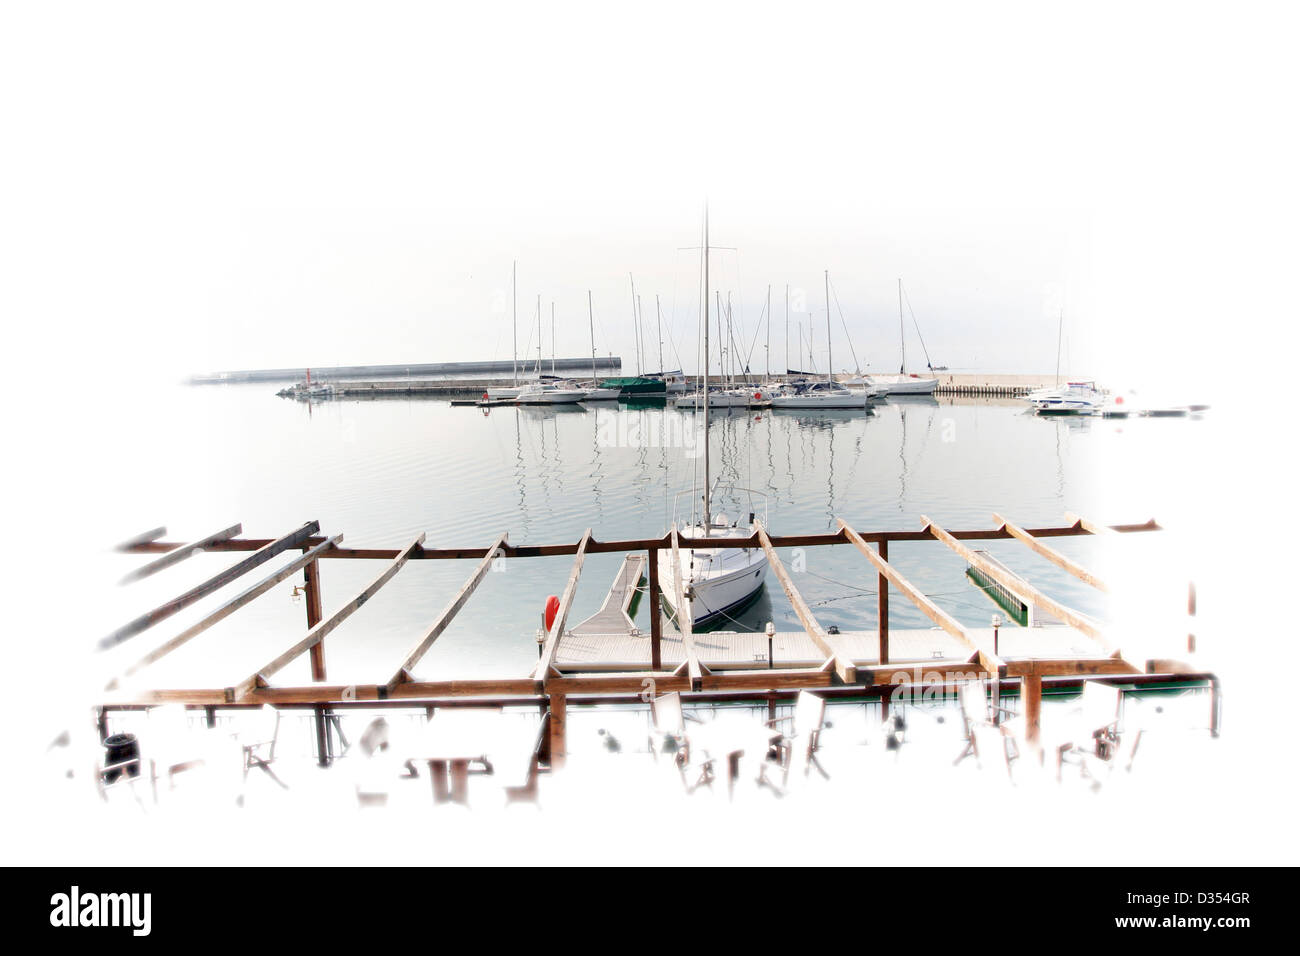 White sailing boats in port. - Stock Image